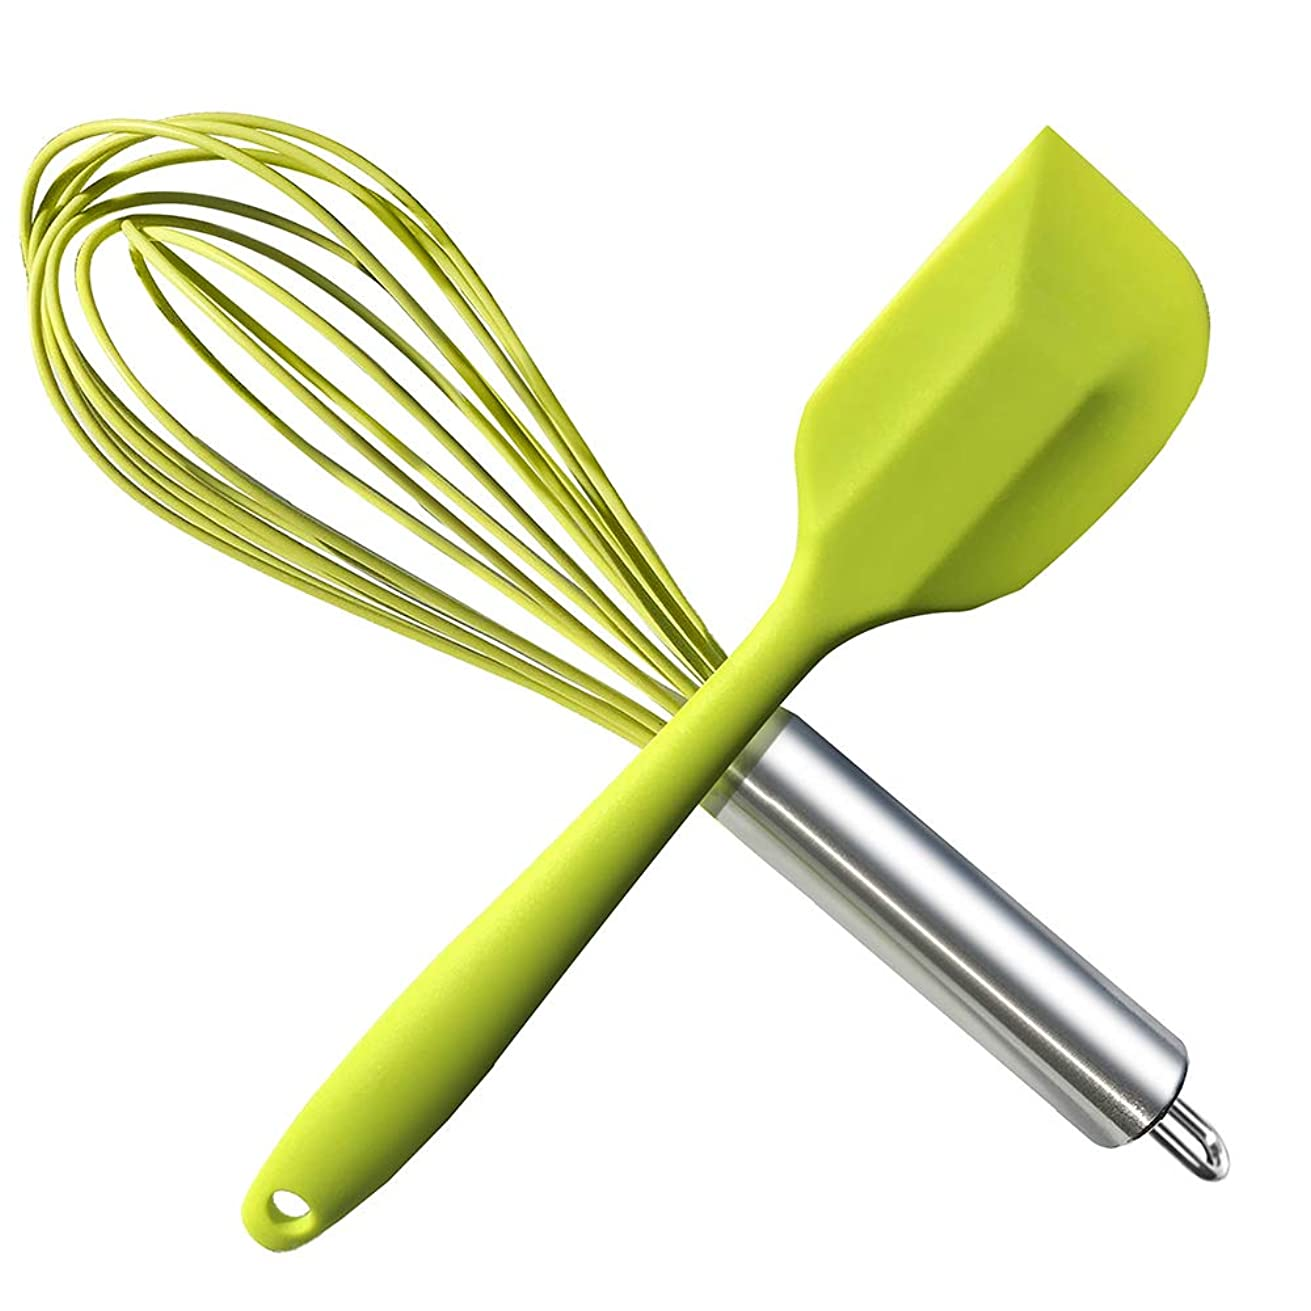 HauBee Kitchen Wire Balloon Silicone Whisk Set 600oF Heat Resistant Non Stick Rubber Stainless Steel Seamless Design Baking Cooking Spatulas Tools (2 Pack,Green),